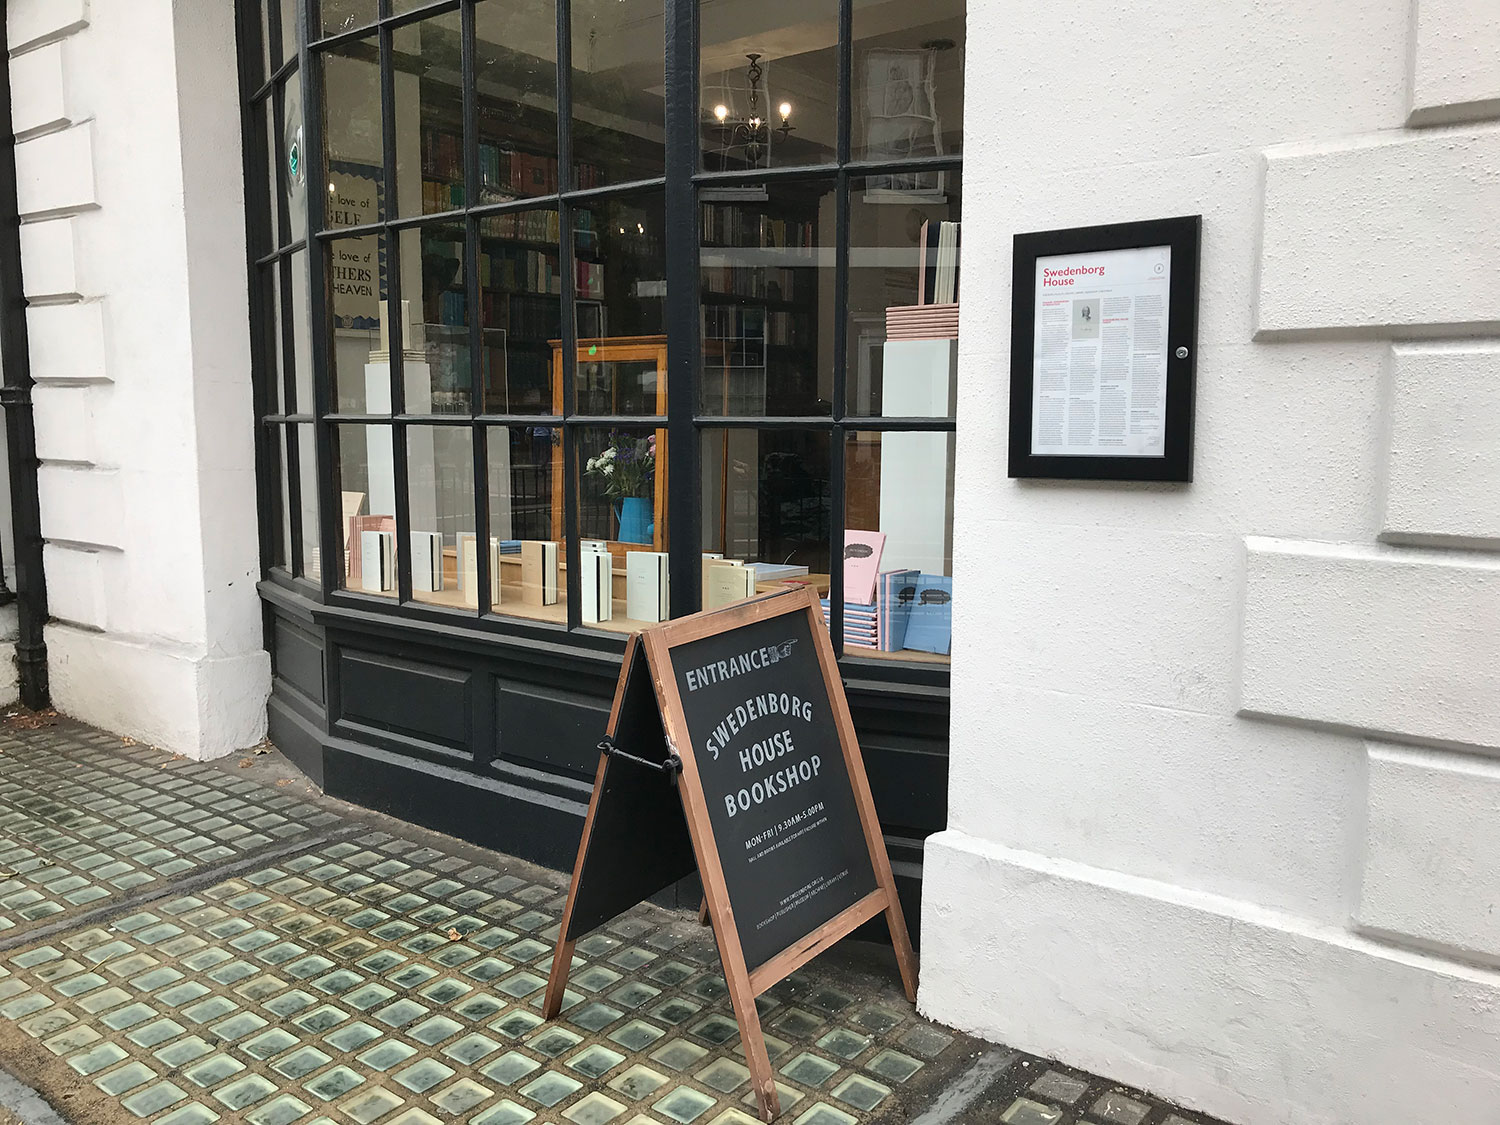 stationery shop bloomsbury - london - swedenborg